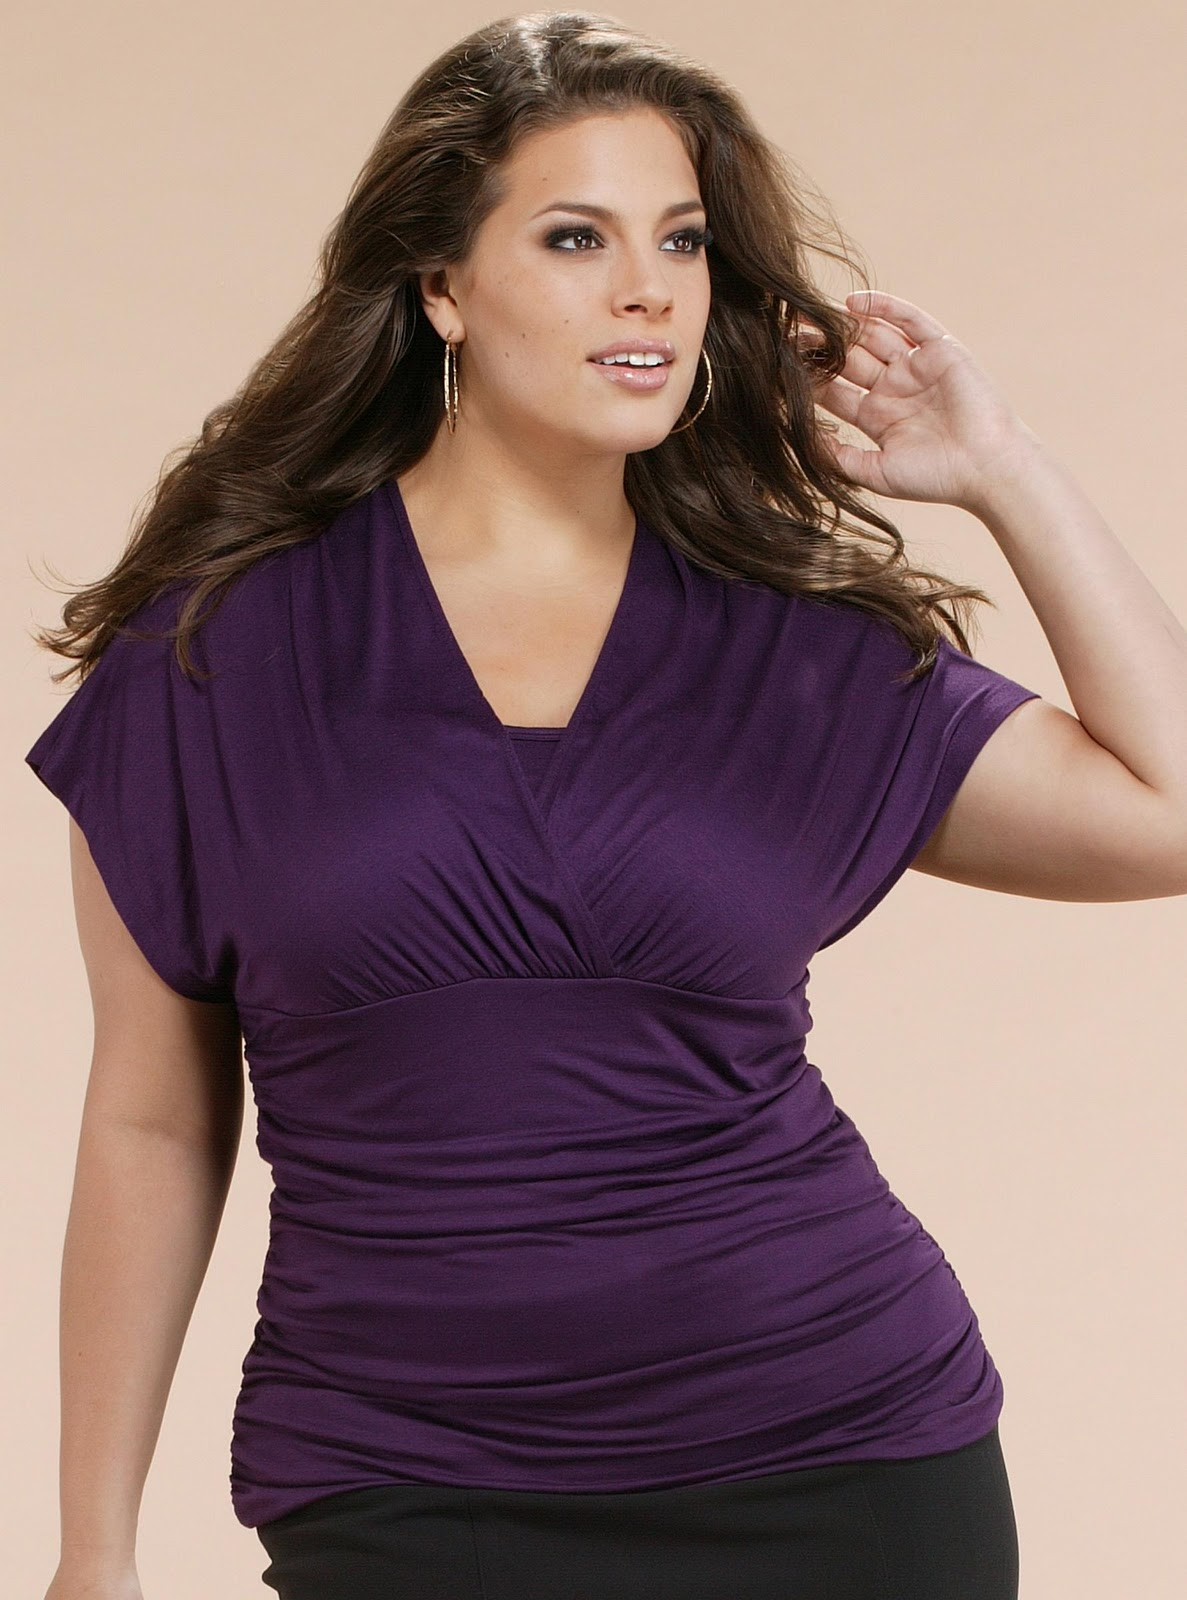 Plus Size Women Latest Fashion Hbo Fashion